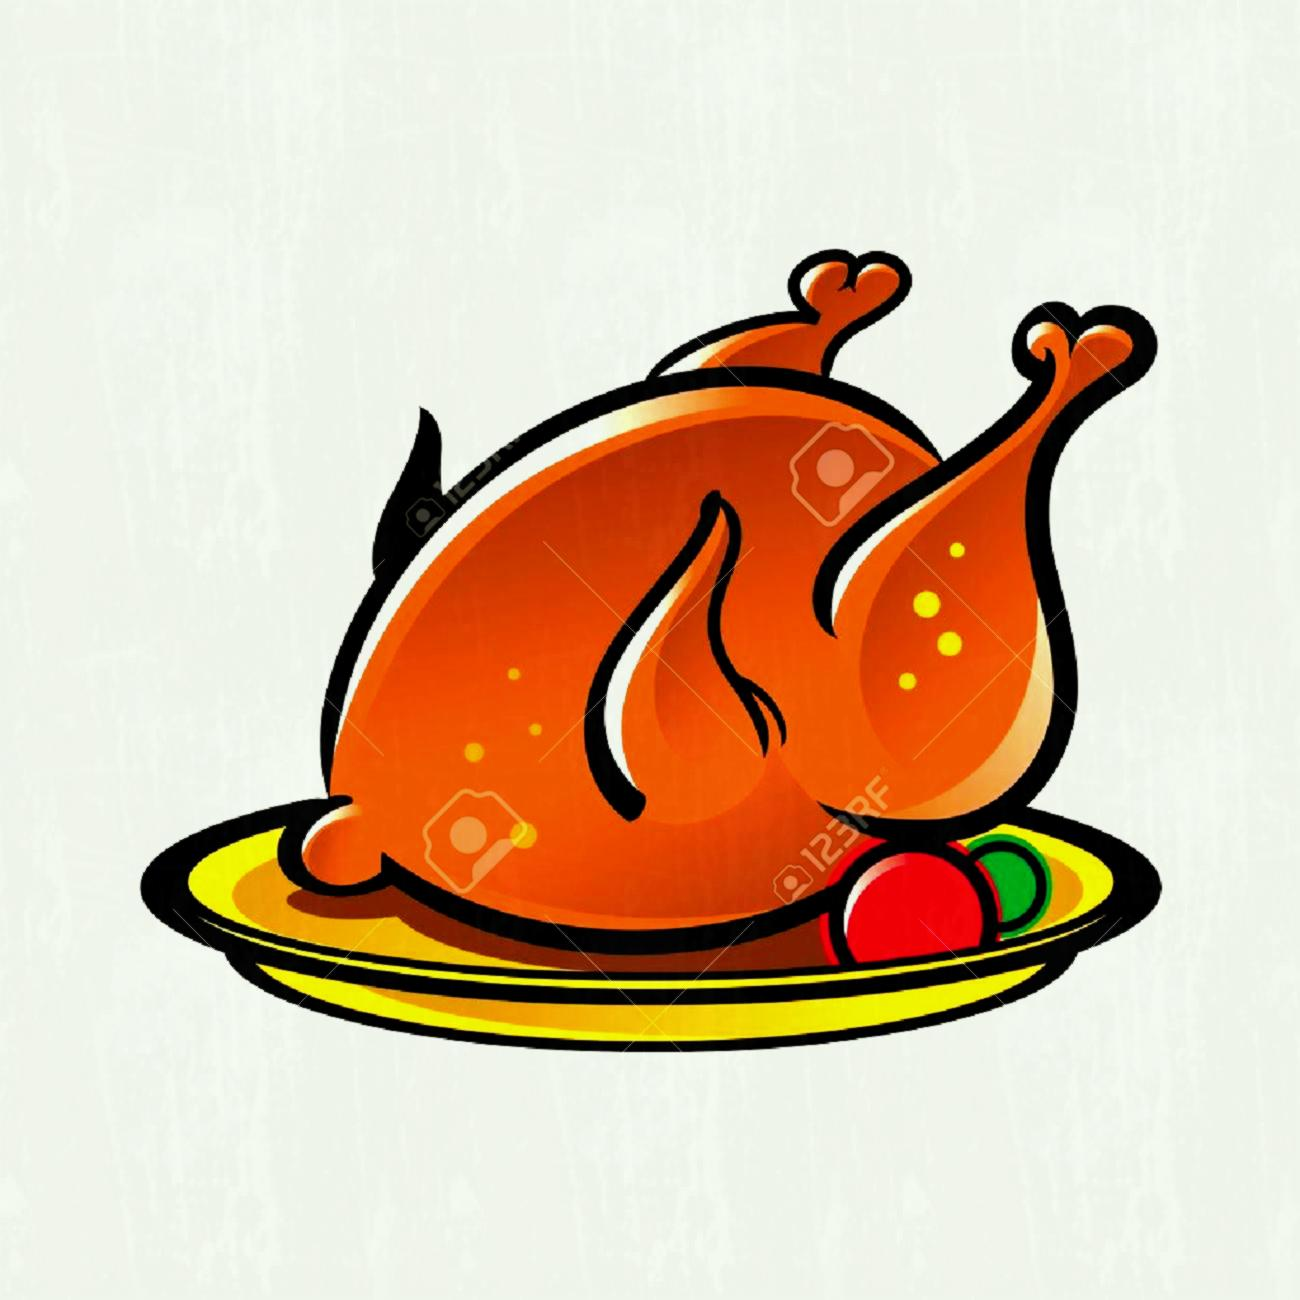 Roasted chicken clipart 2 » Clipart Station.